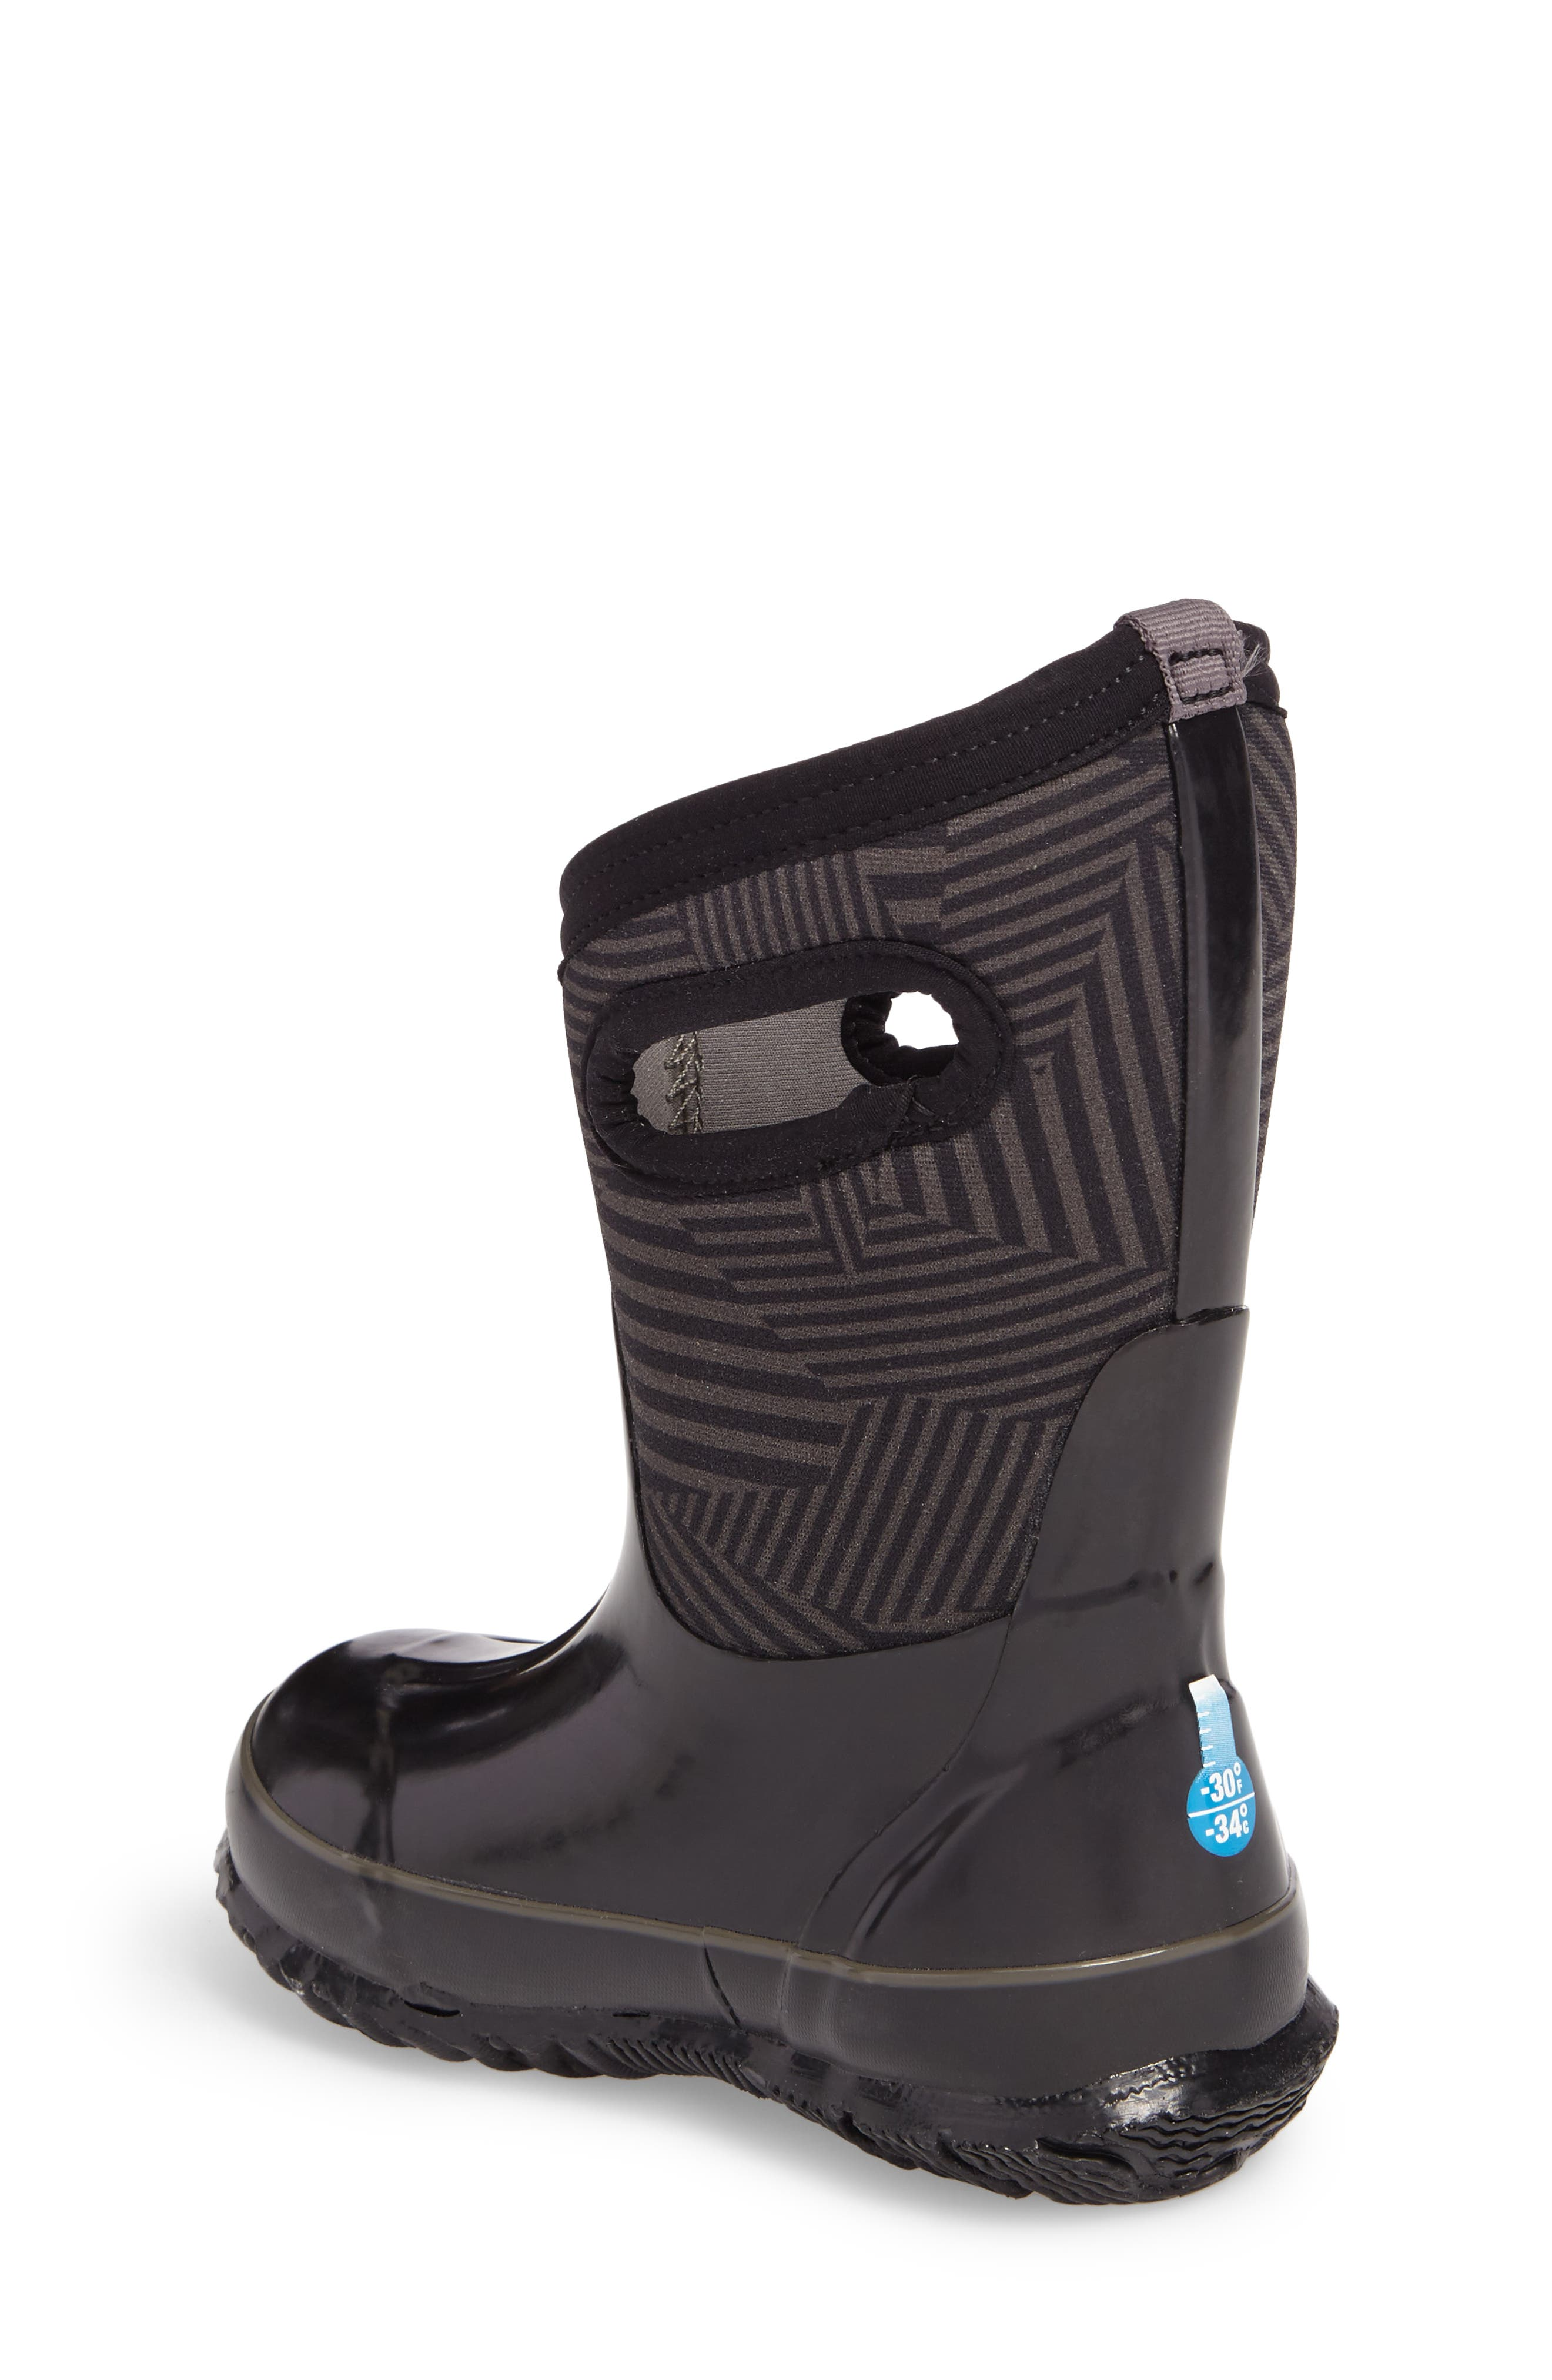 Classic Phaser Insulated Waterproof Boot,                             Alternate thumbnail 2, color,                             Black Multi